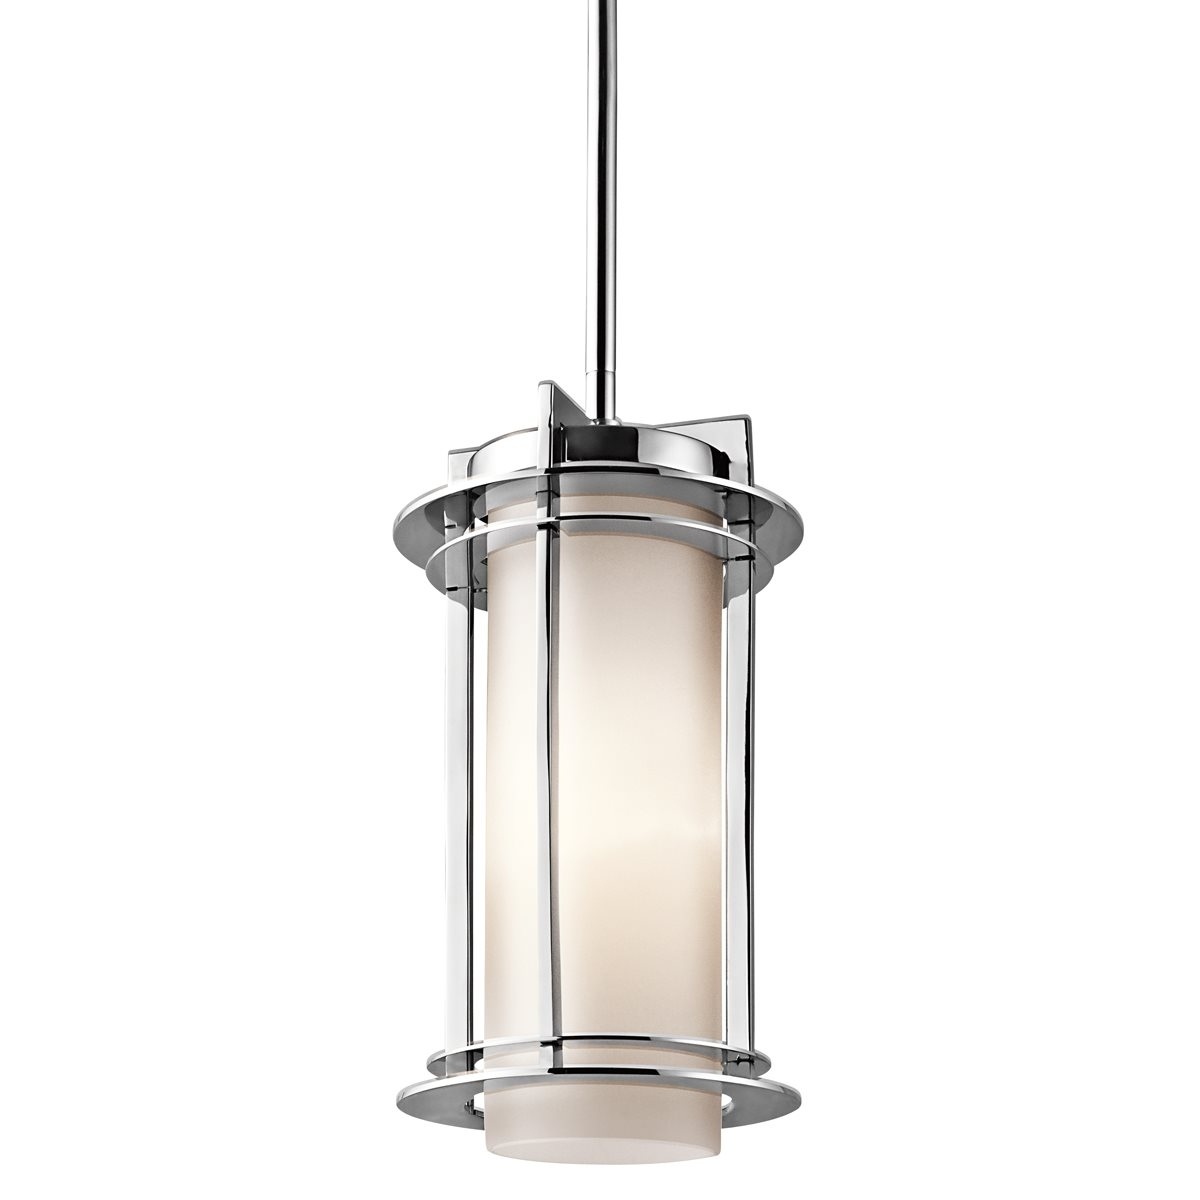 Pendant Lighting Ideas: Modern Outdoor Pendant Lighting Fixtures Regarding Widely Used Outdoor Hanging Entry Lights (View 15 of 20)